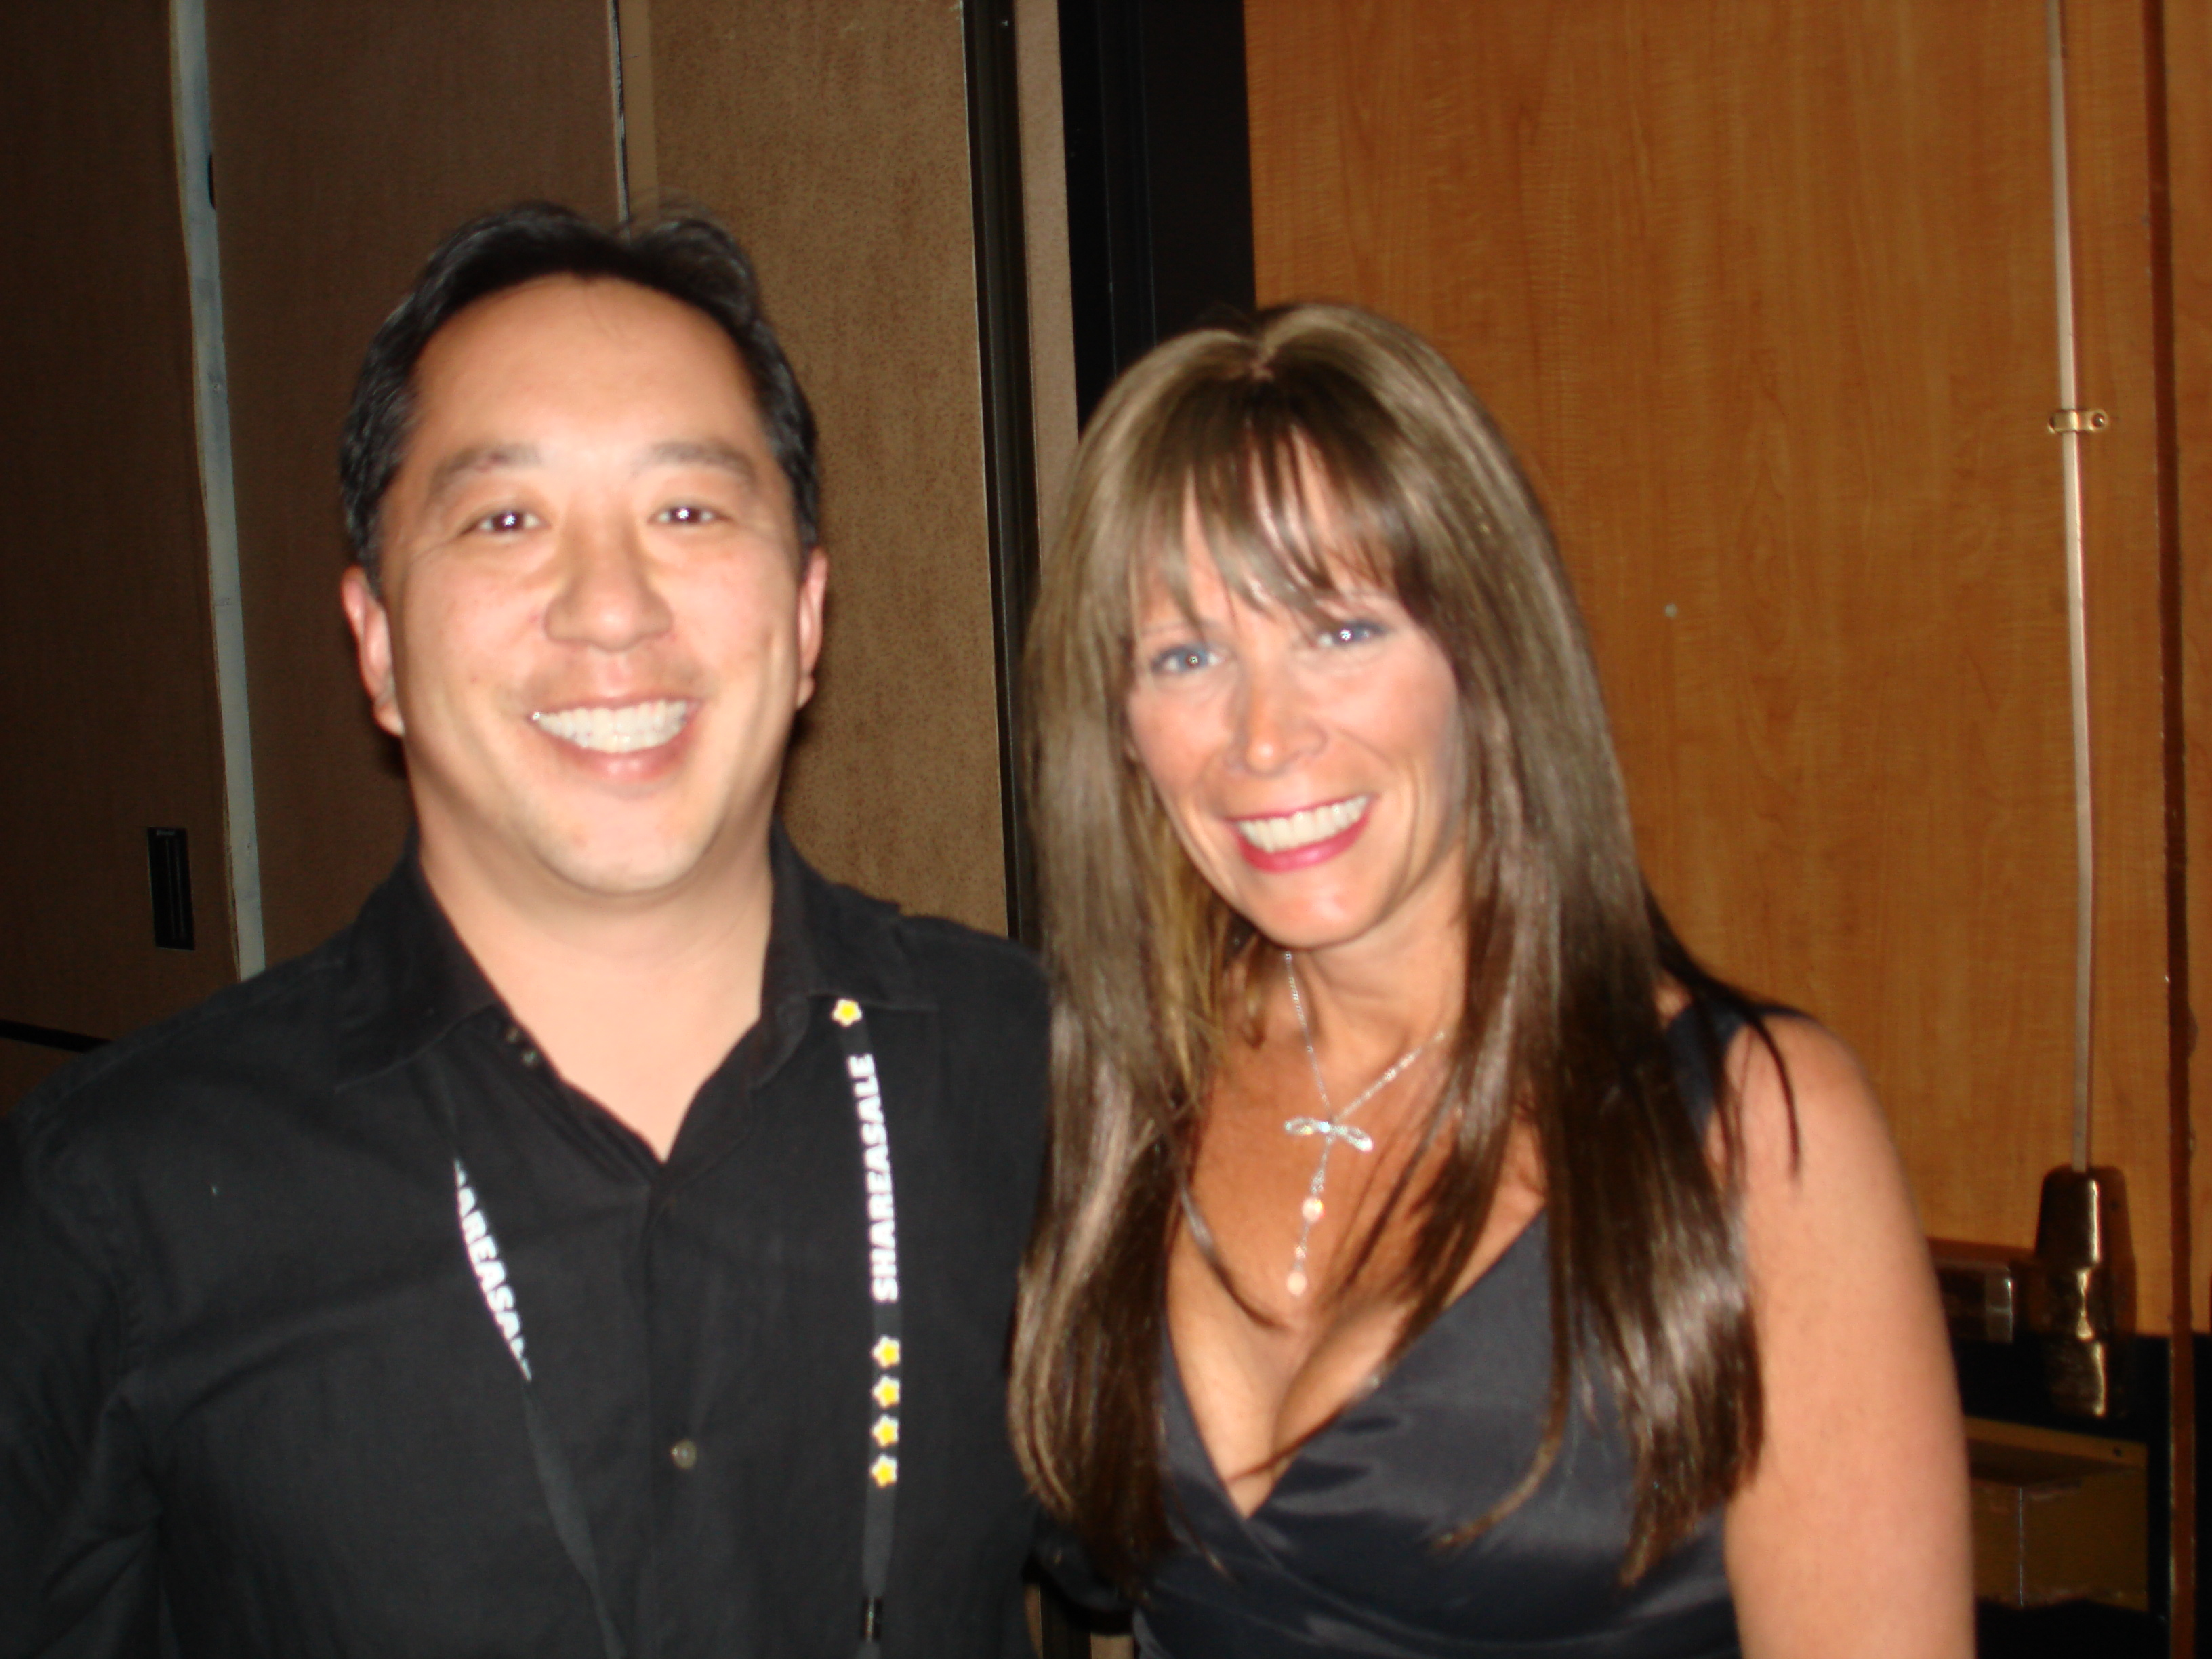 With Missy Ward, Co-founder of Affiliate Summit